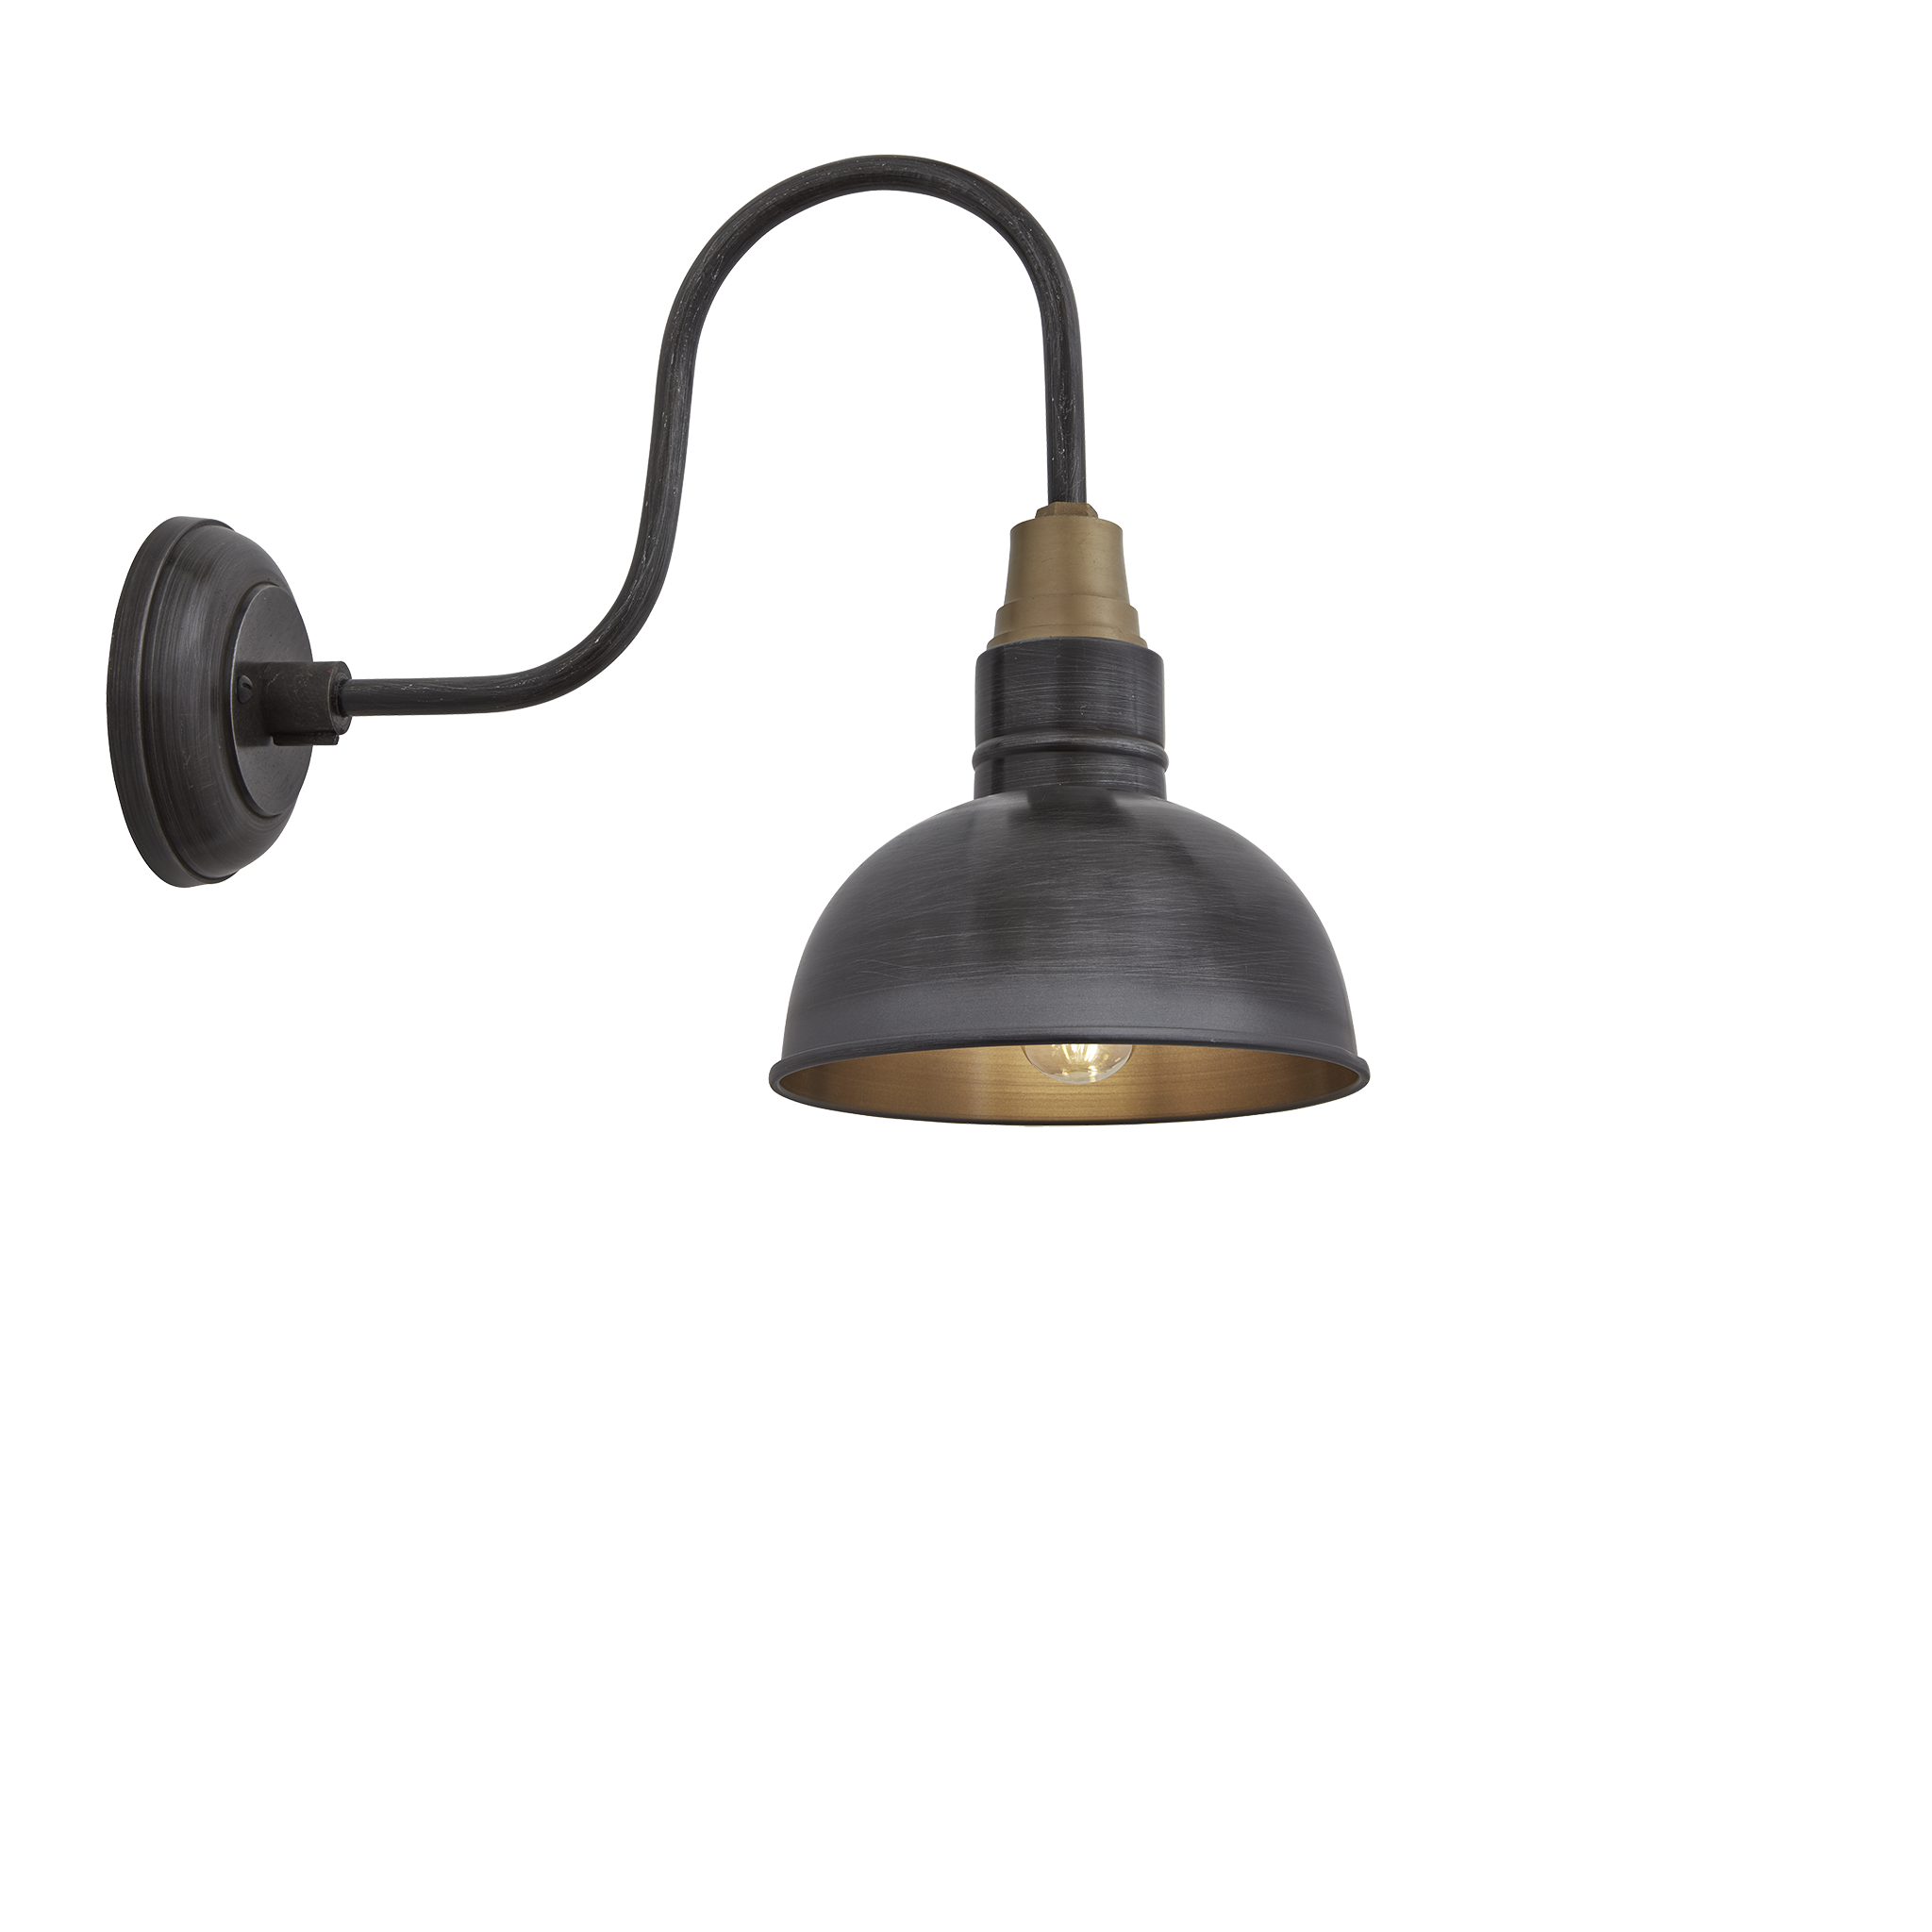 Swan neck dome wall light 8 inch pewter swans wall sconces swan neck dome wall light 8 inch pewter arubaitofo Gallery